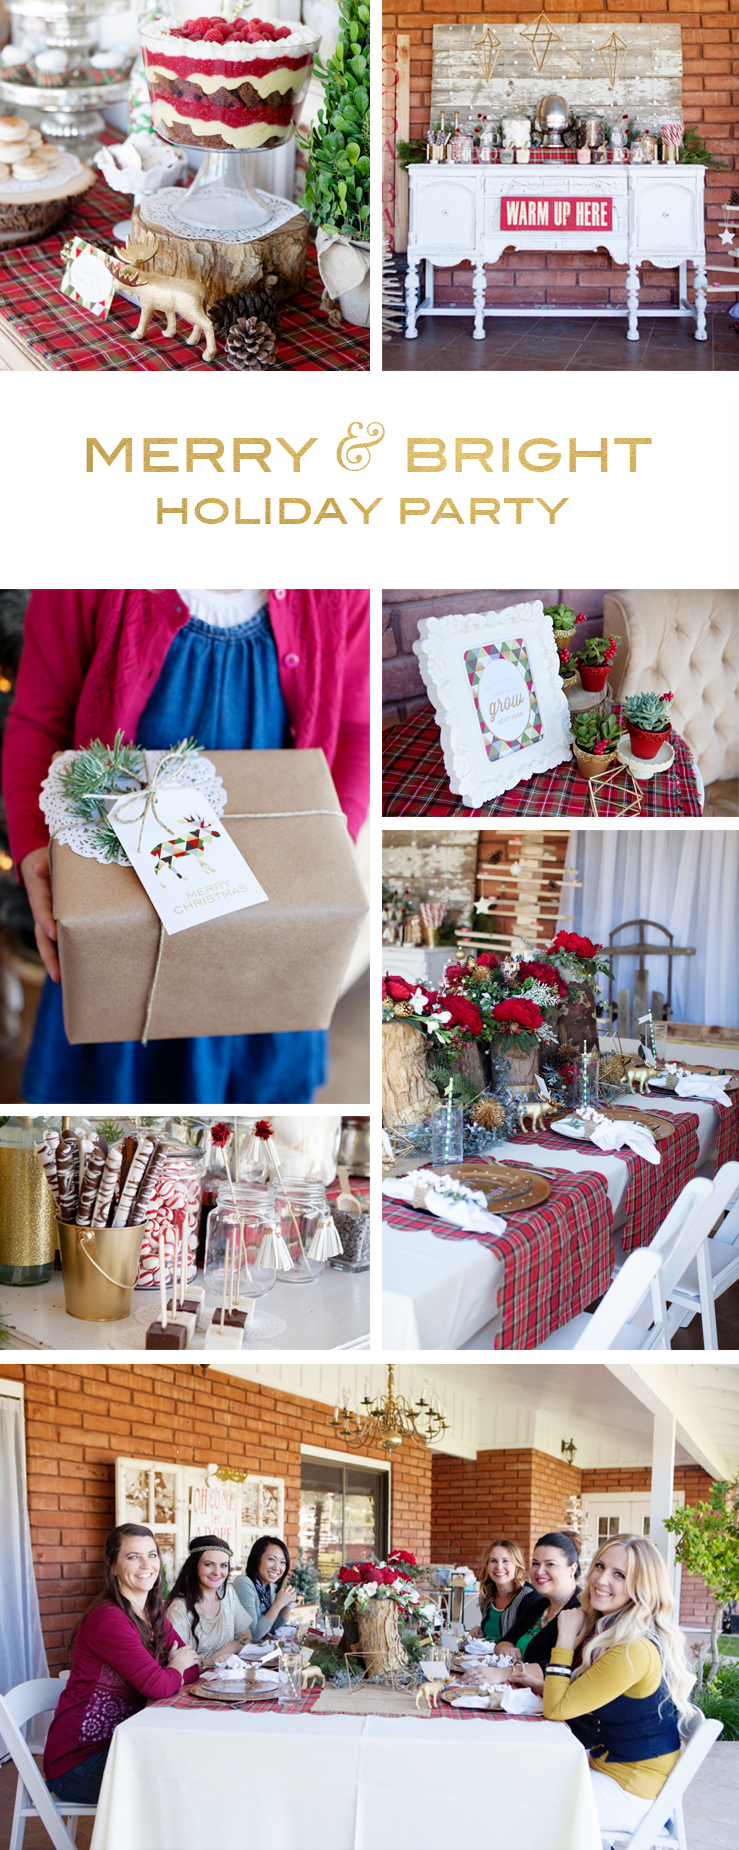 Merry & Bright Holiday Party